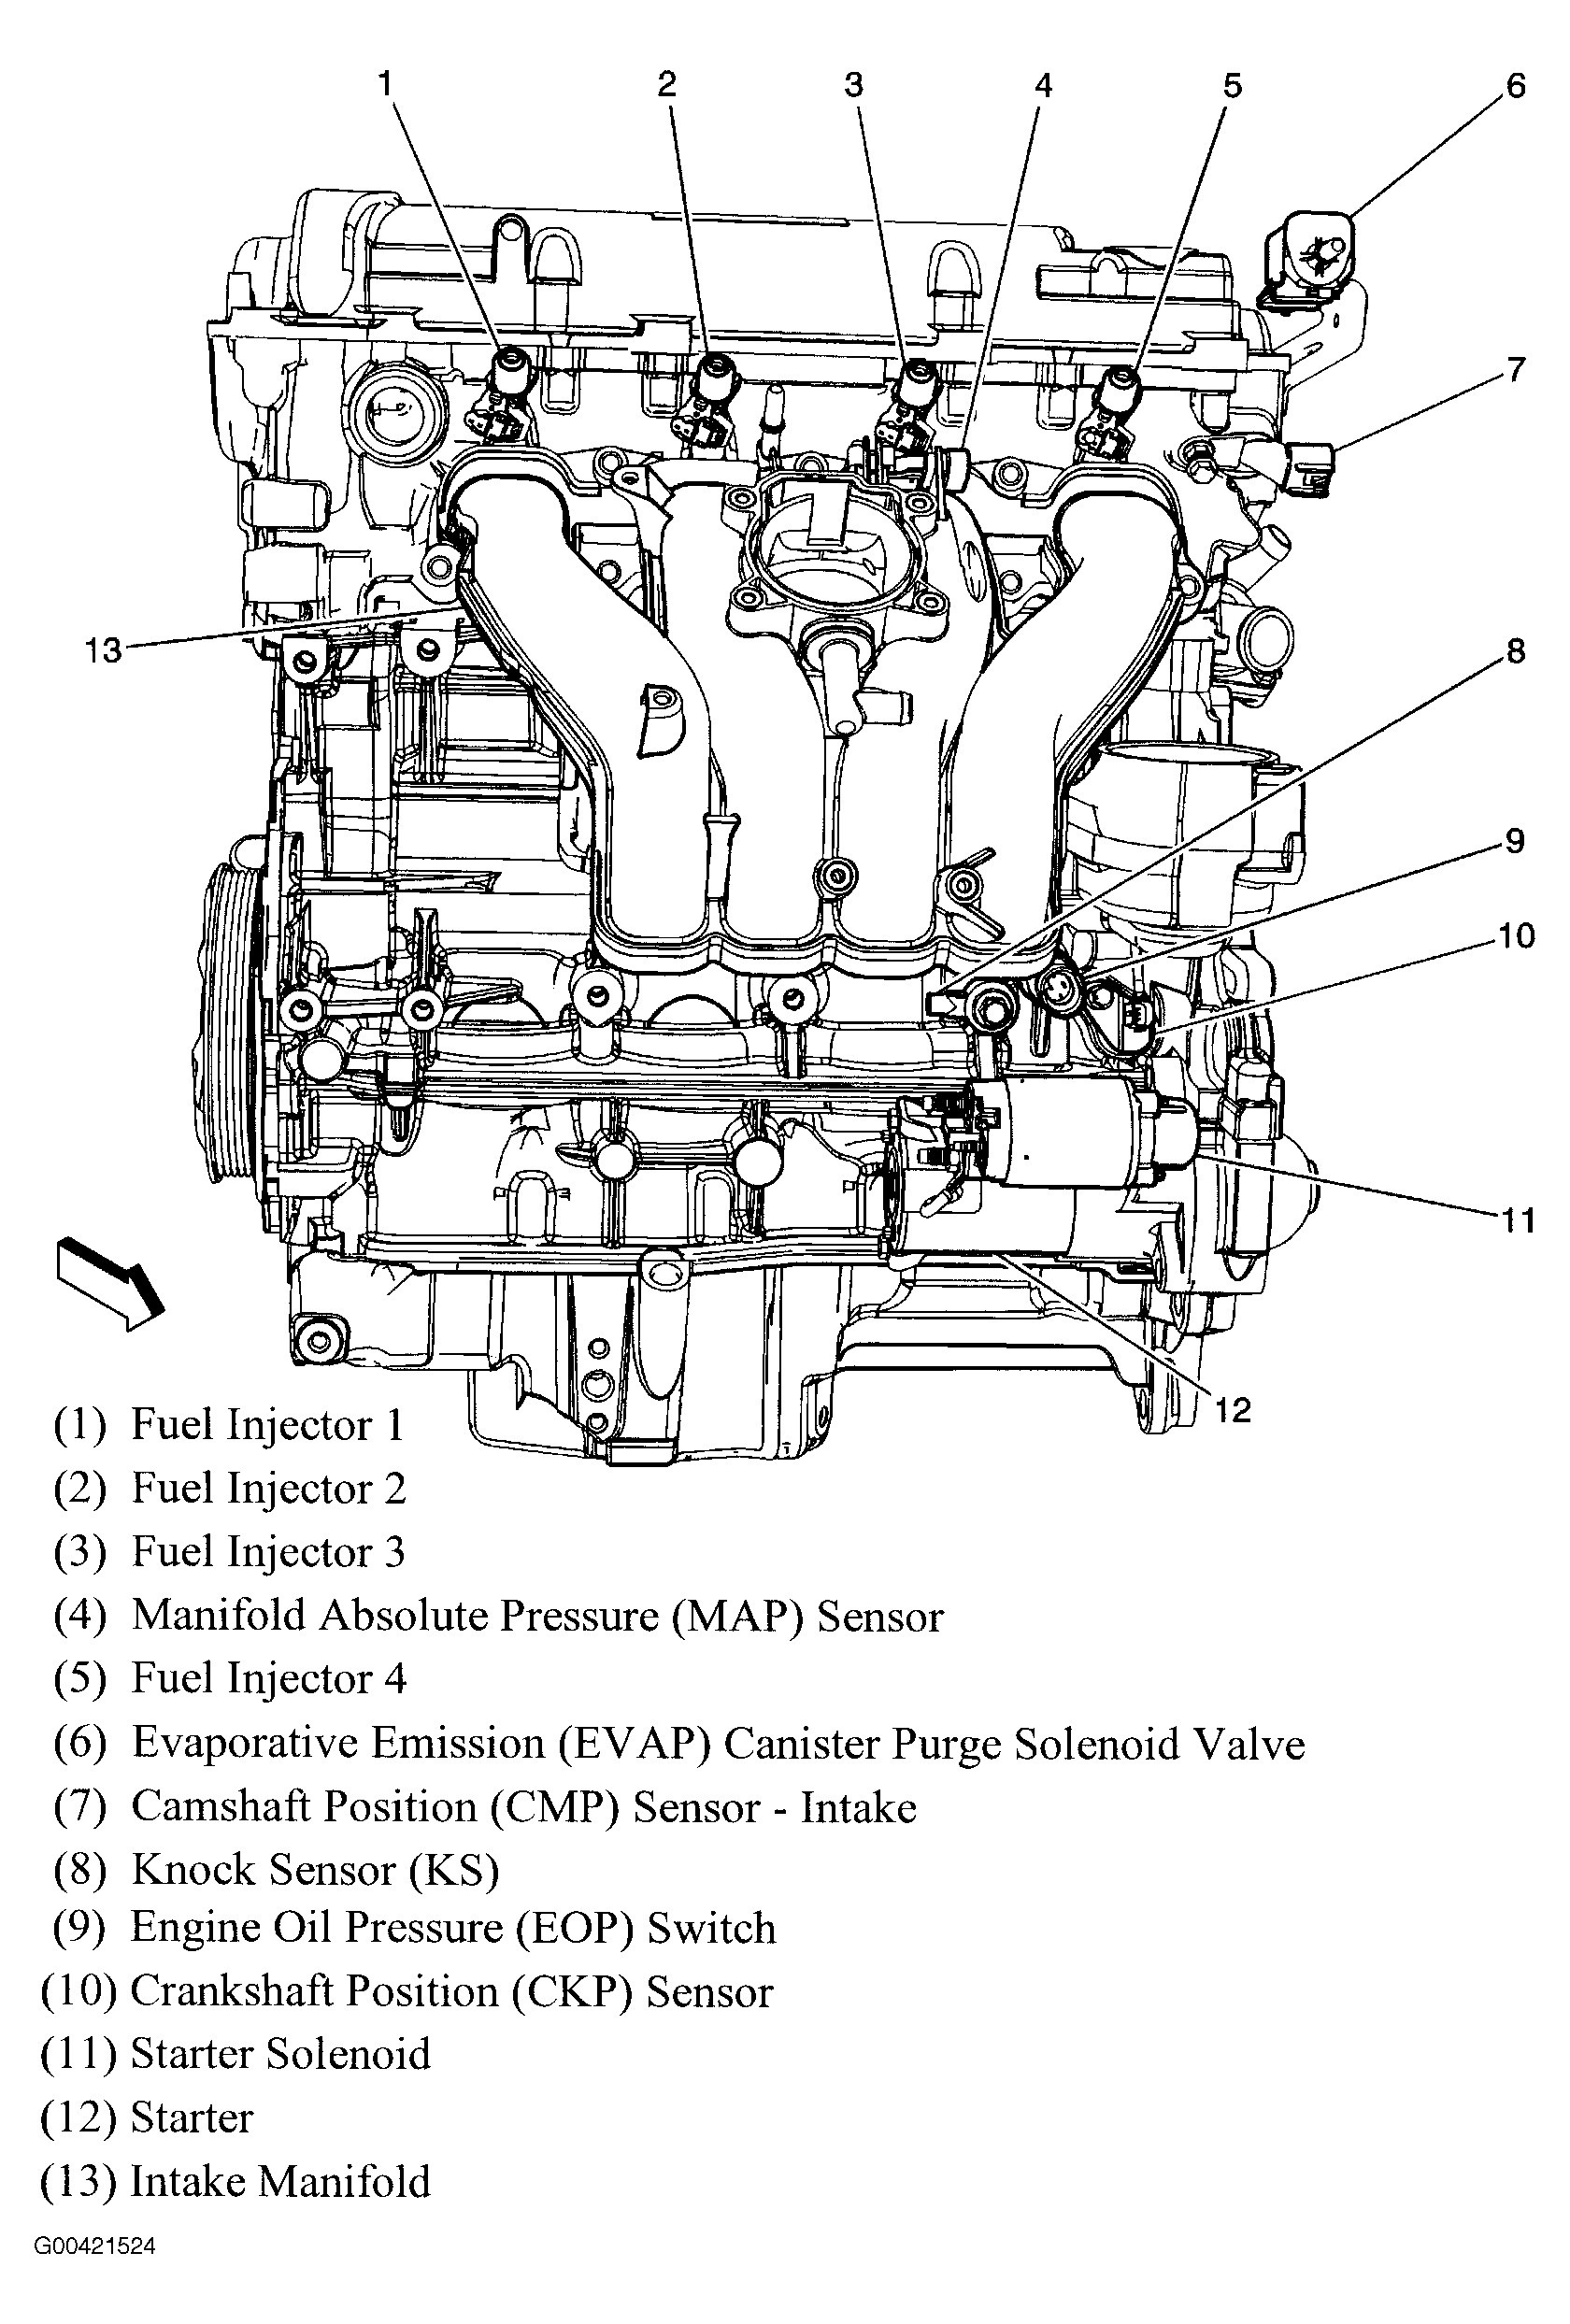 hight resolution of 2005 impala engine wiring diagram wiring diagram toolbox 2005 chevy impala engine diagram wiring diagram datasource